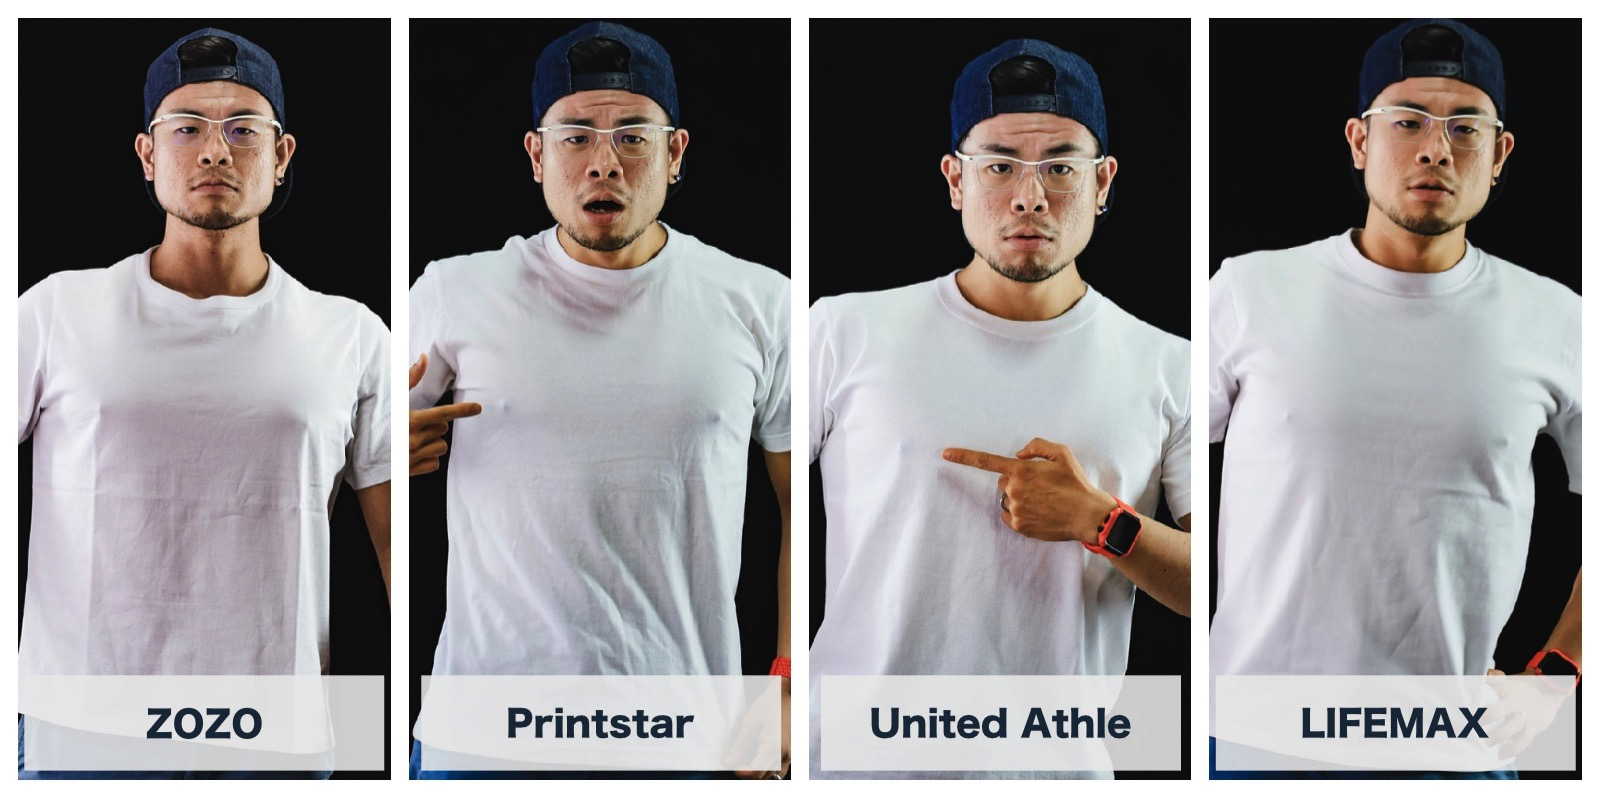 Three-Types-of-White-Tshirts-Compared-3-2.jpg